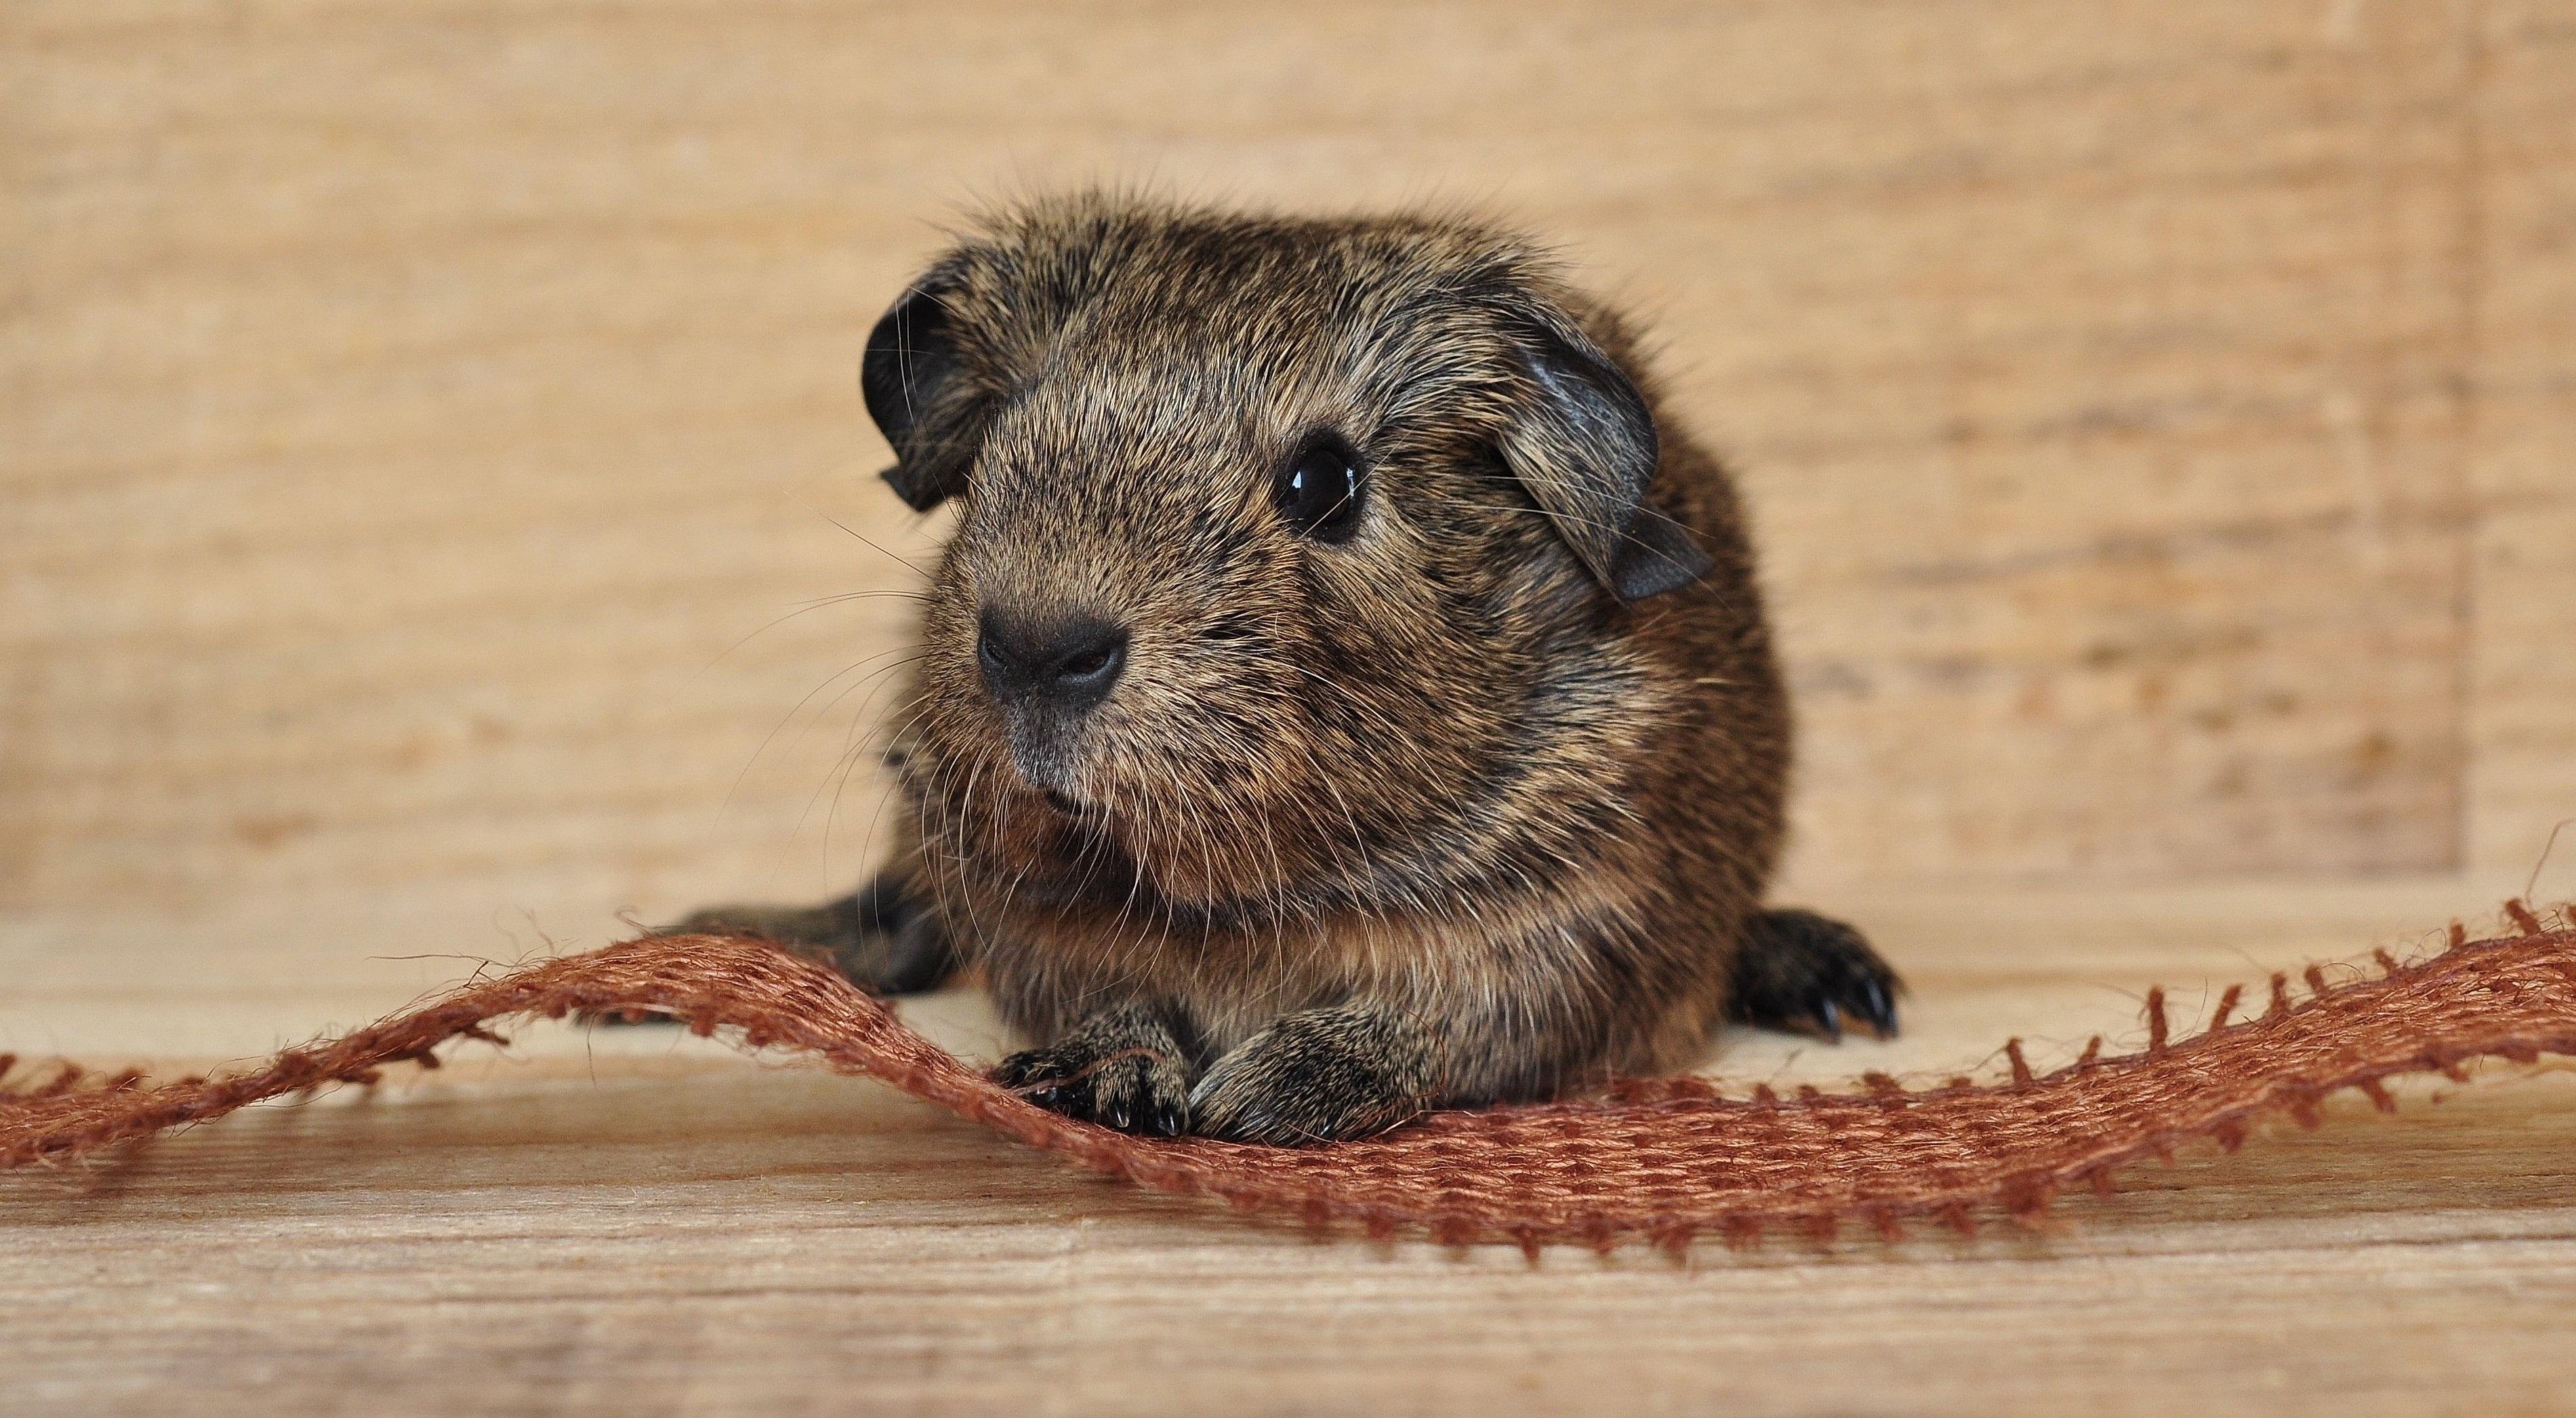 124099 download wallpaper Animals, Guinea Pig, Rodent, Muzzle screensavers and pictures for free